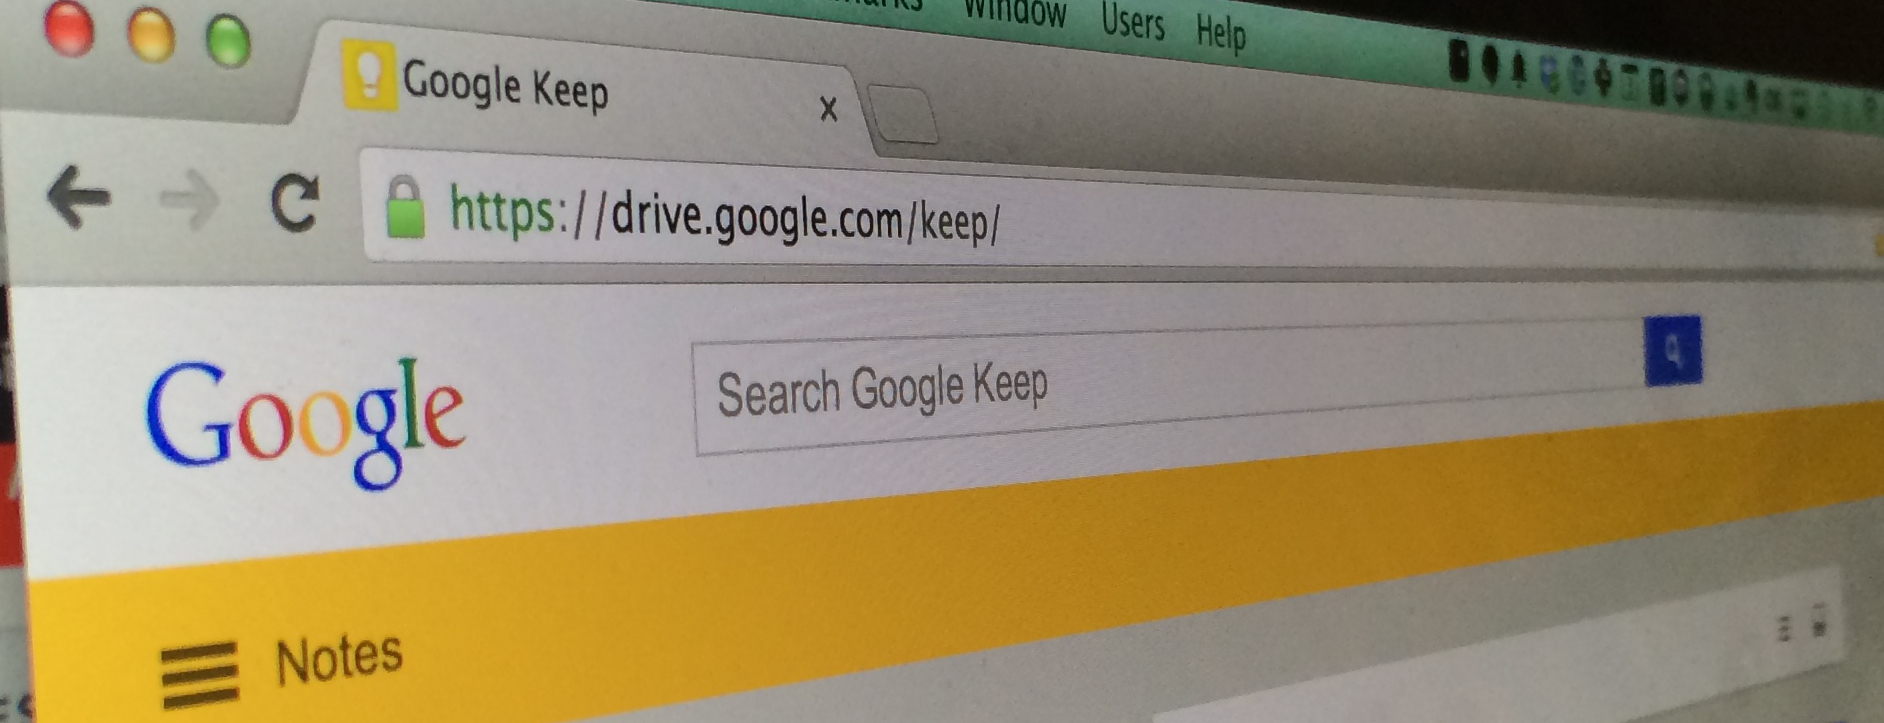 Google Keep Gets Fast Search for Text in Images